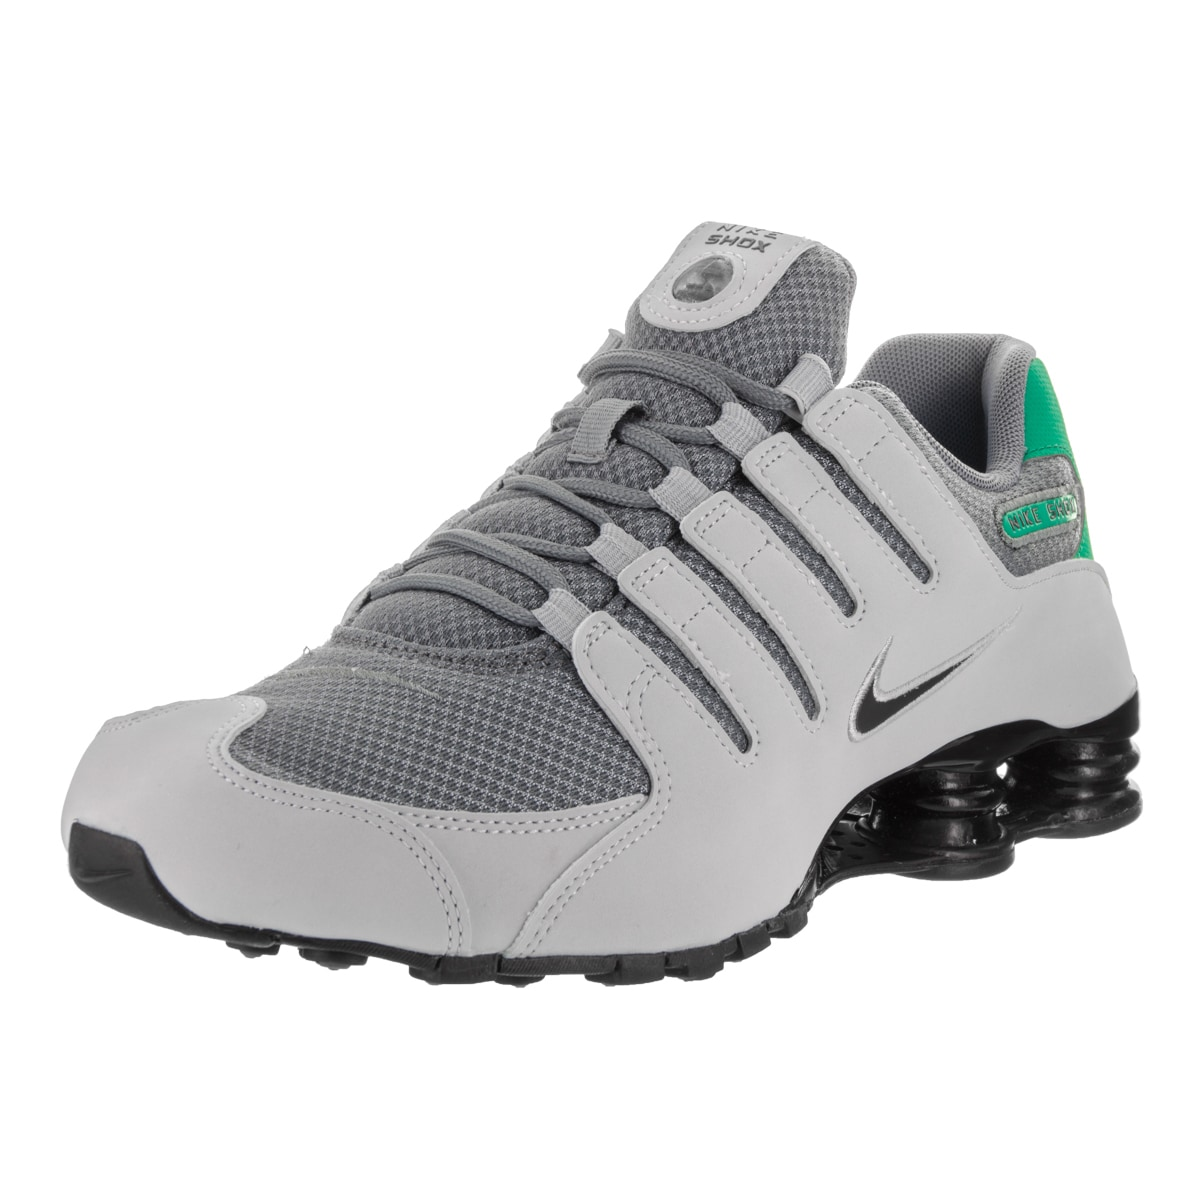 patata píldora Benigno  Shop Nike Men's Shox NZ SE Grey Synthetic Leather Running Shoes - Overstock  - 14564827